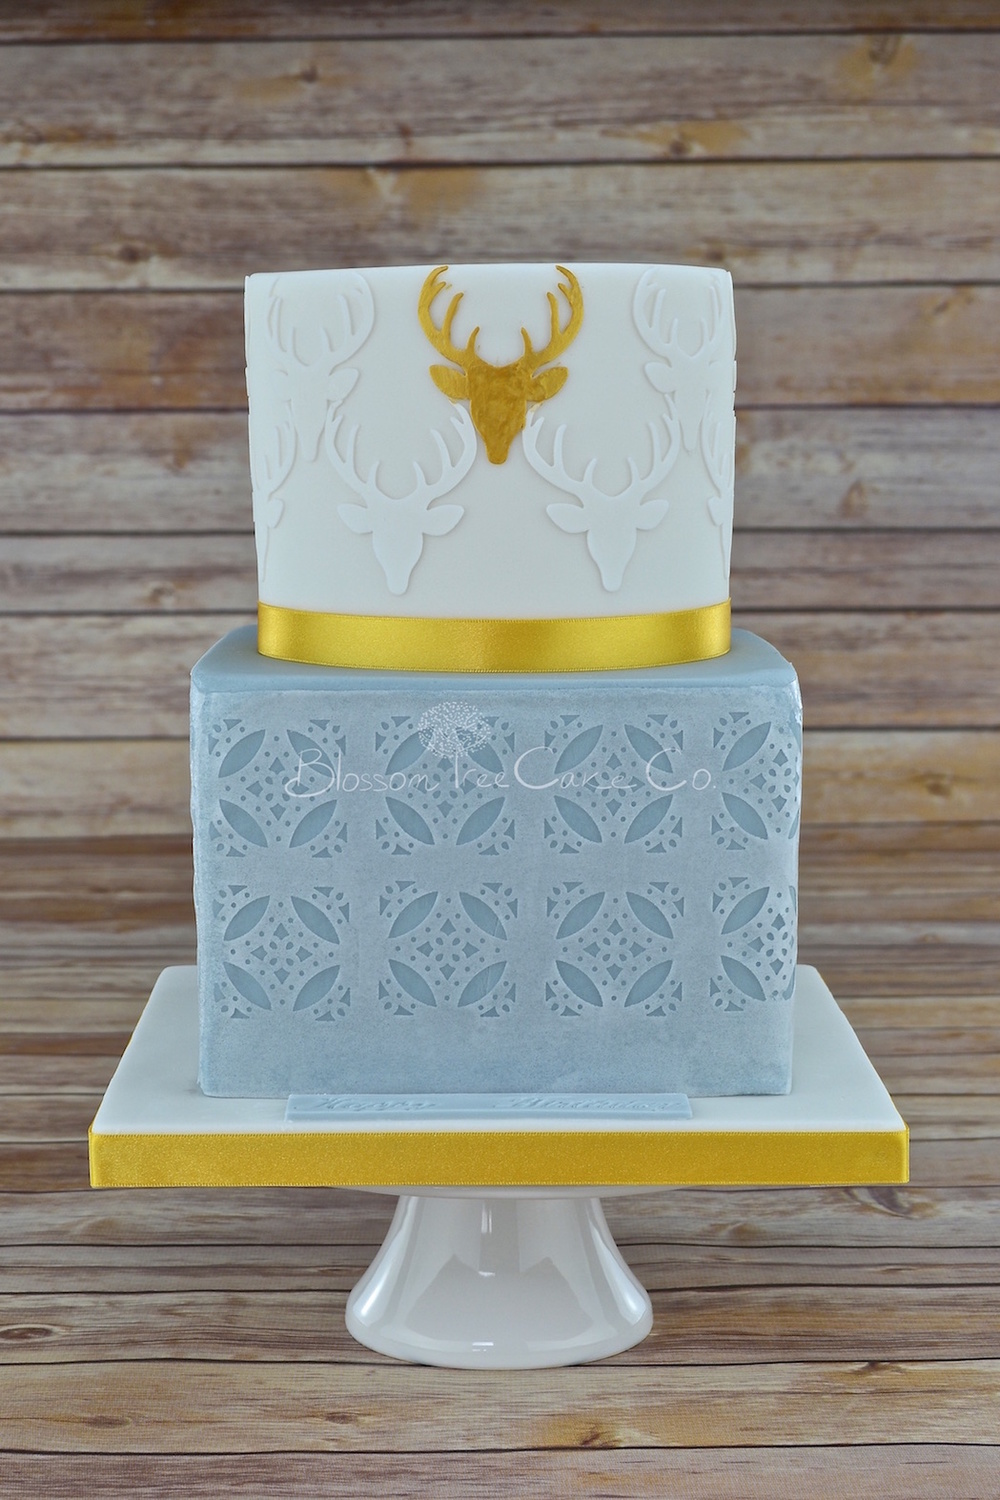 Gold Stag celebration cake by Blossom Tree Cake Co Harrogate North Yorkshire.jpg